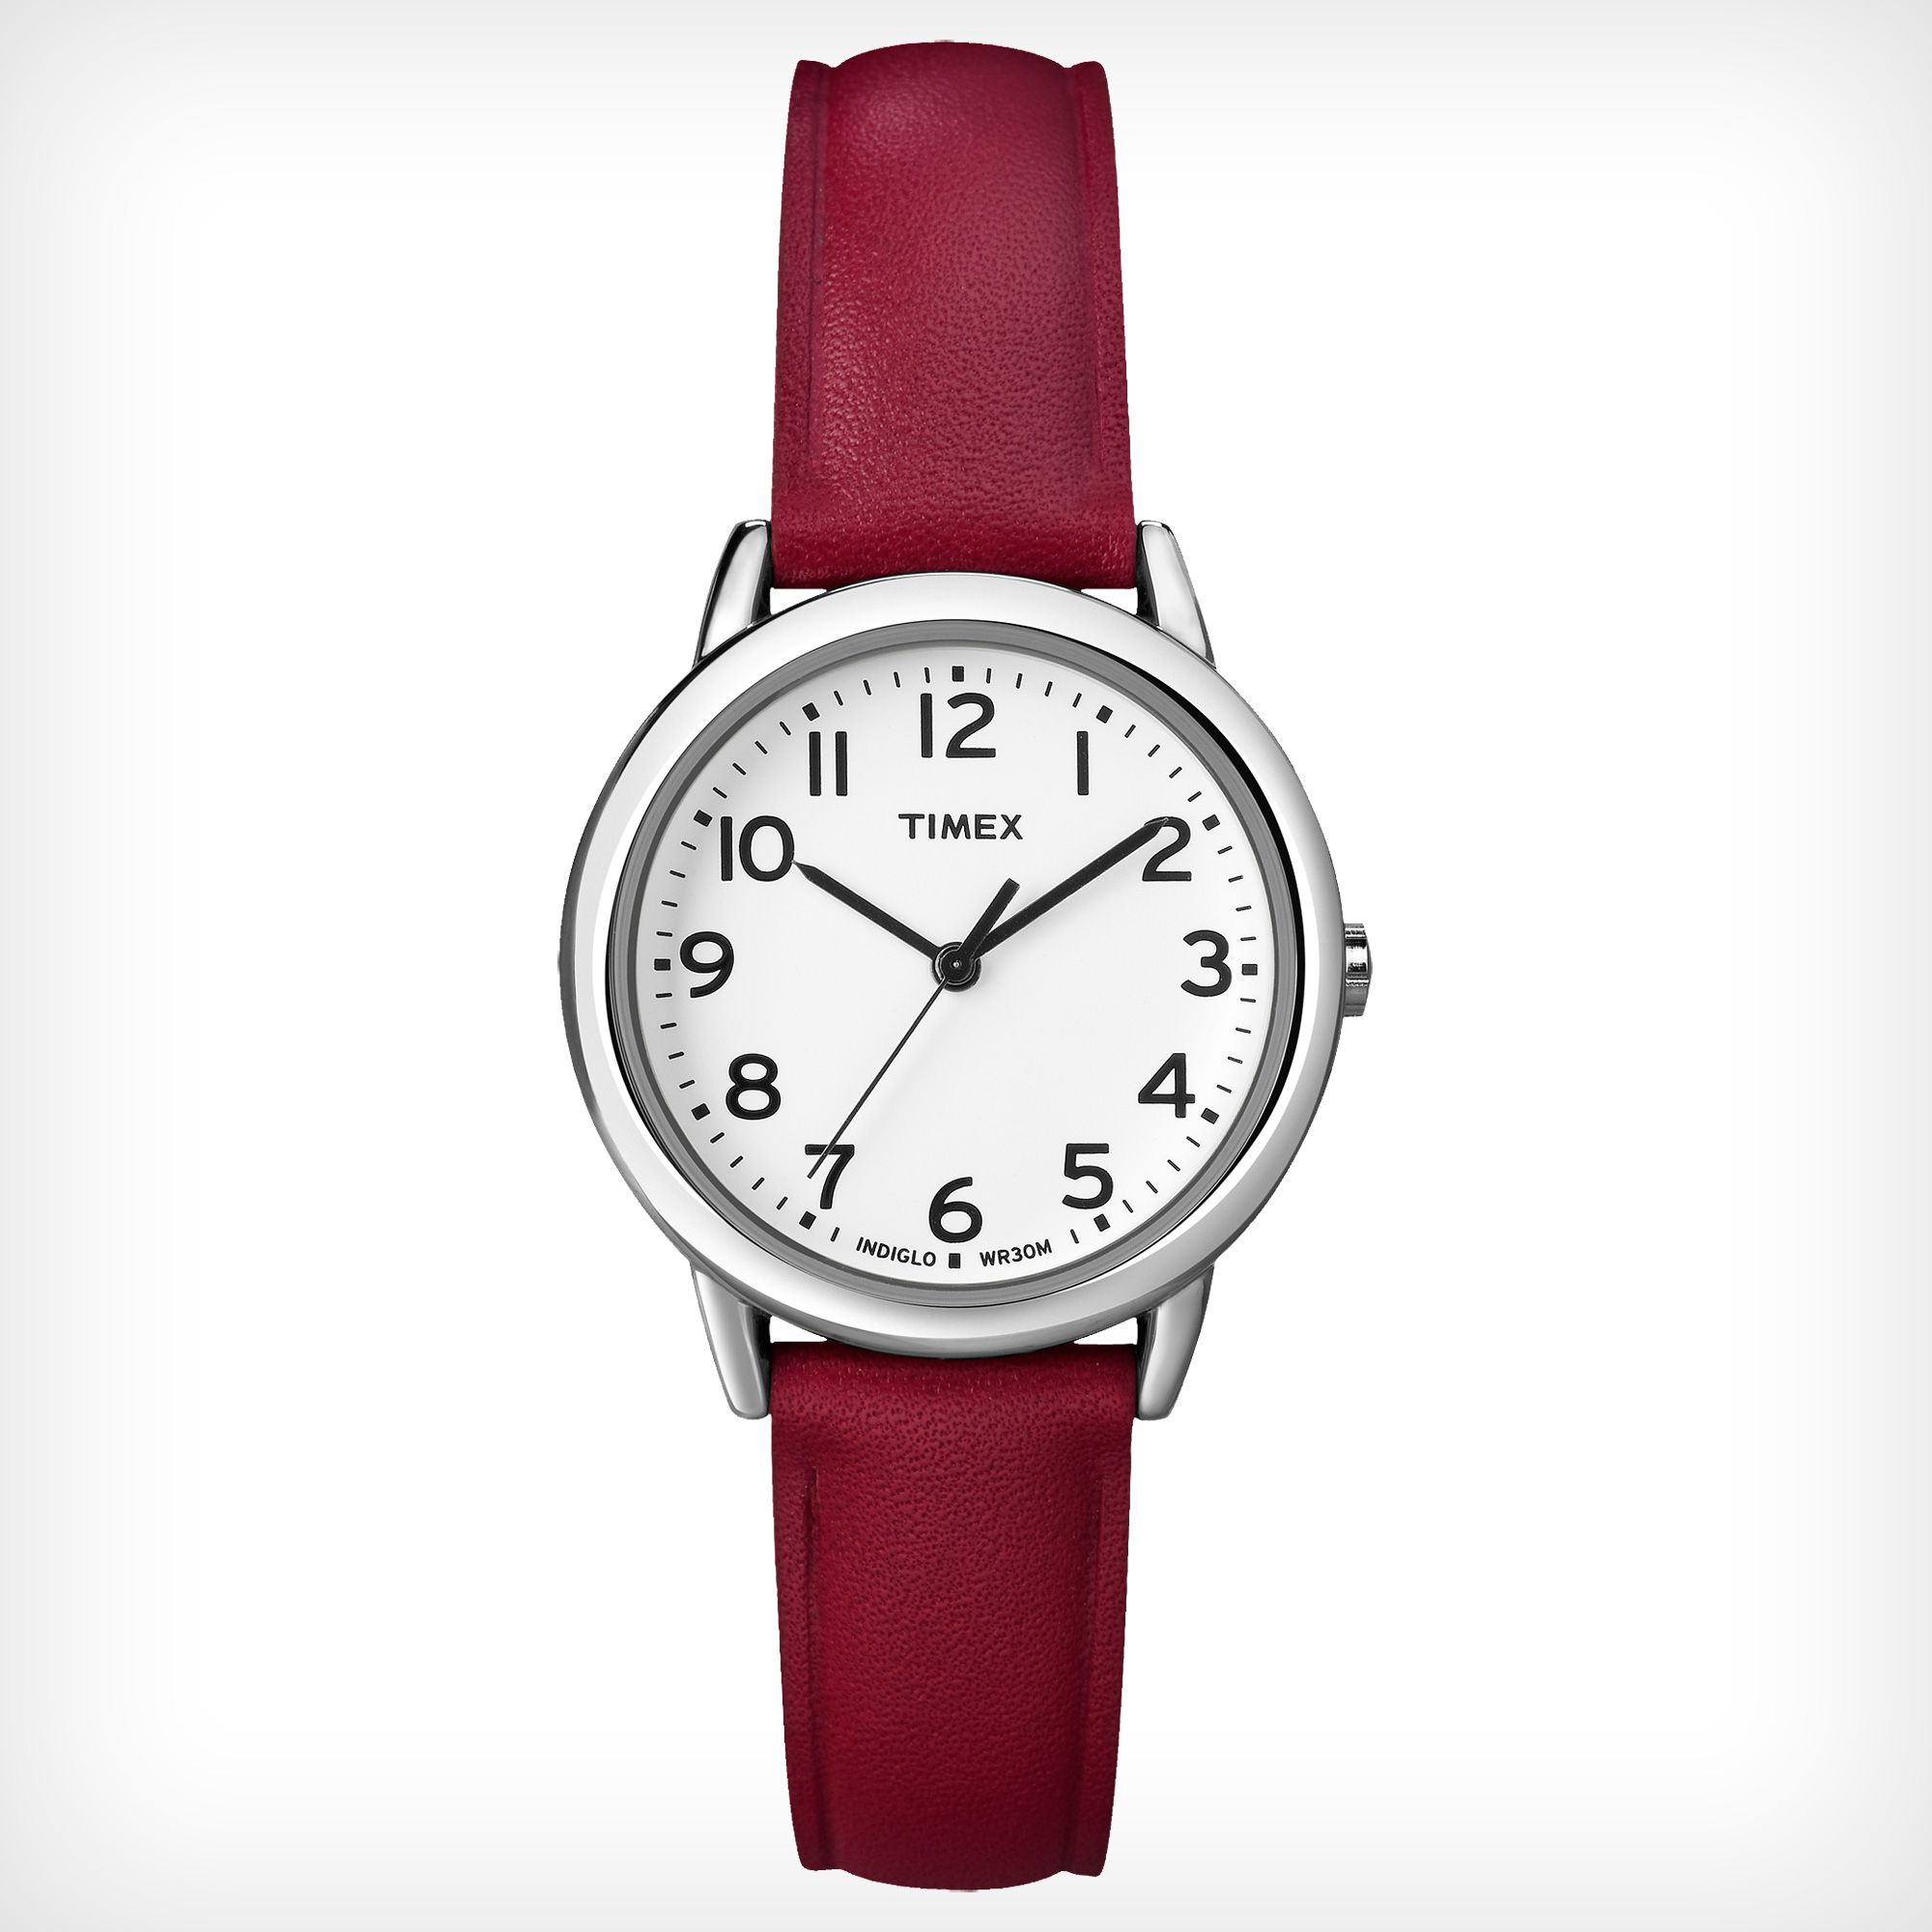 For More Than 150 Years Timex Has Focused On Quality Value And Timeless Style Today Trusted Favorites Testify To Our Cu Leather Band Leather Straps Leather